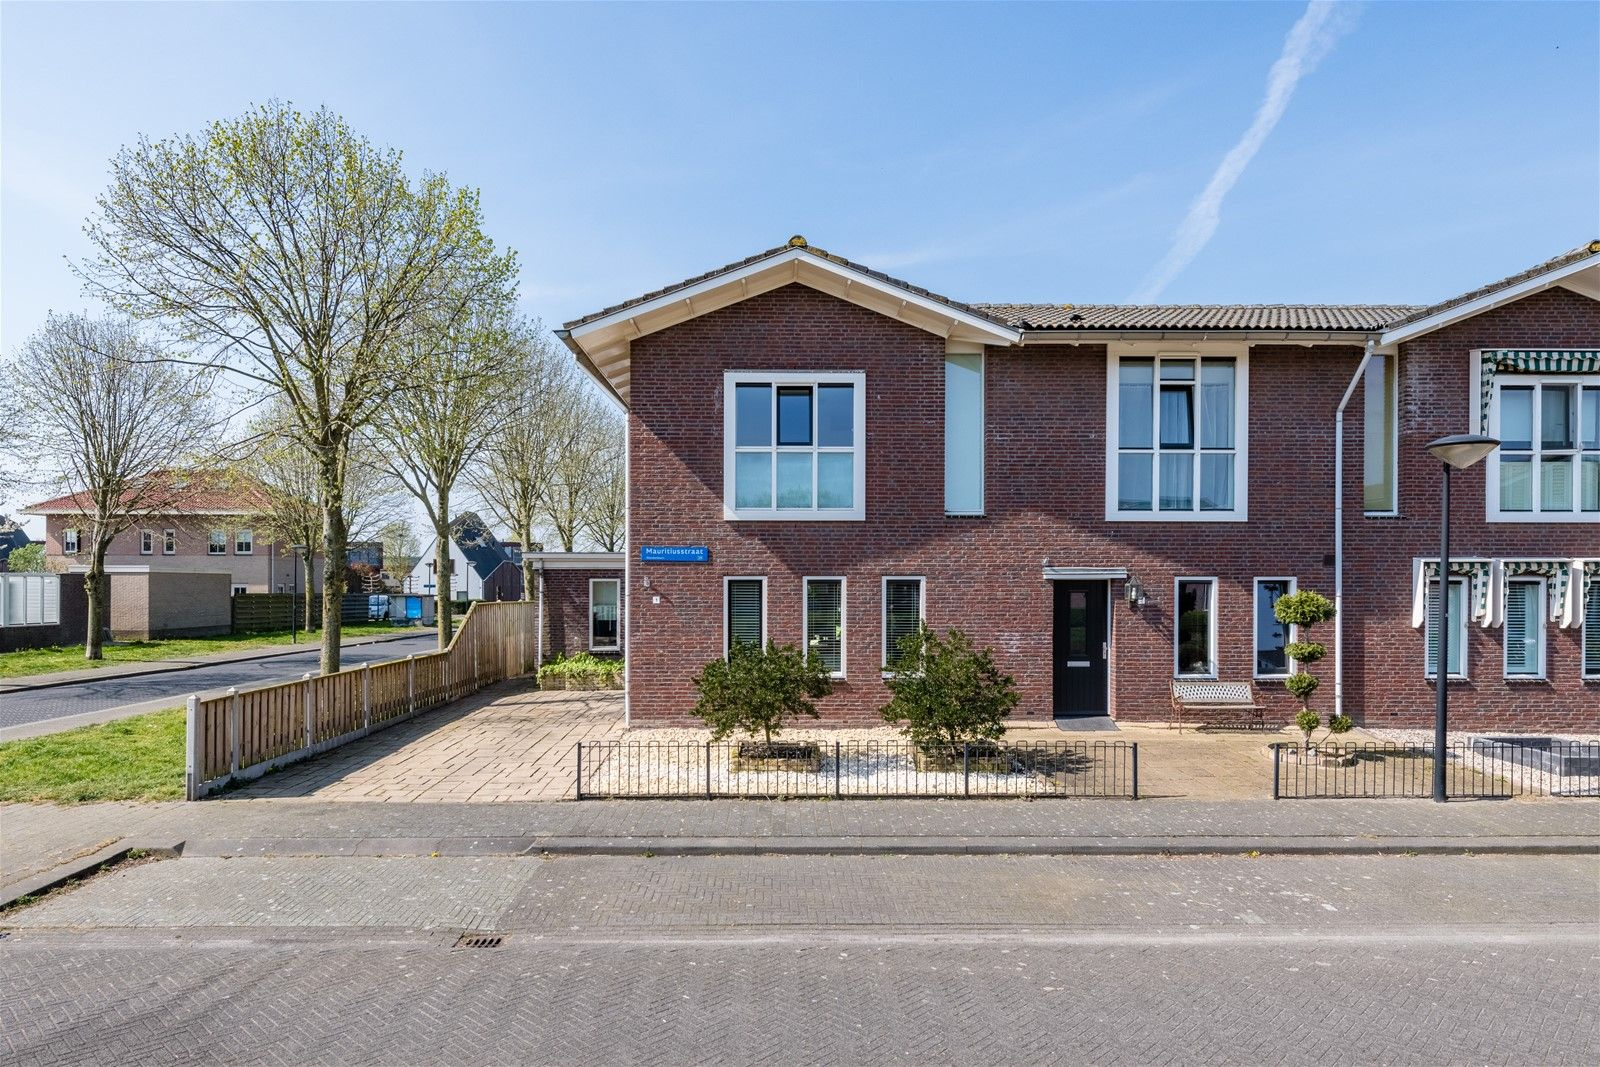 Mauritiusstraat 1, Almere